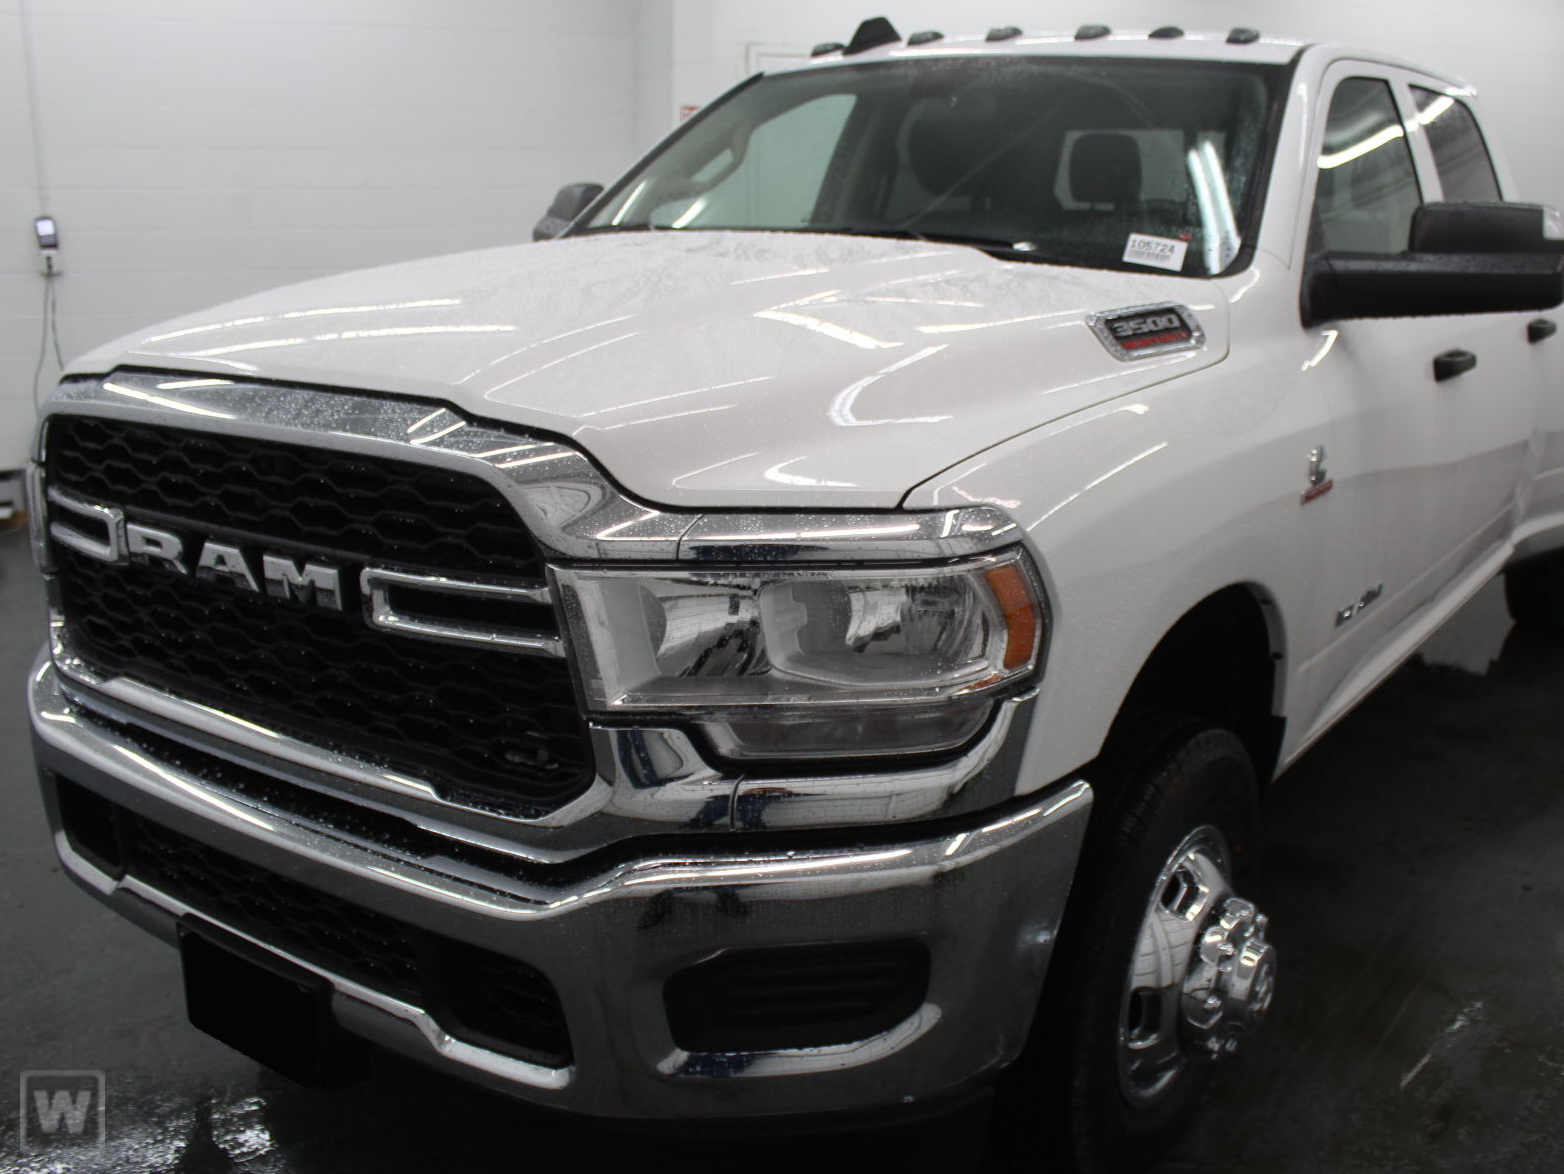 2020 Ram 3500 Crew Cab 4x4, Pickup #50486 - photo 1